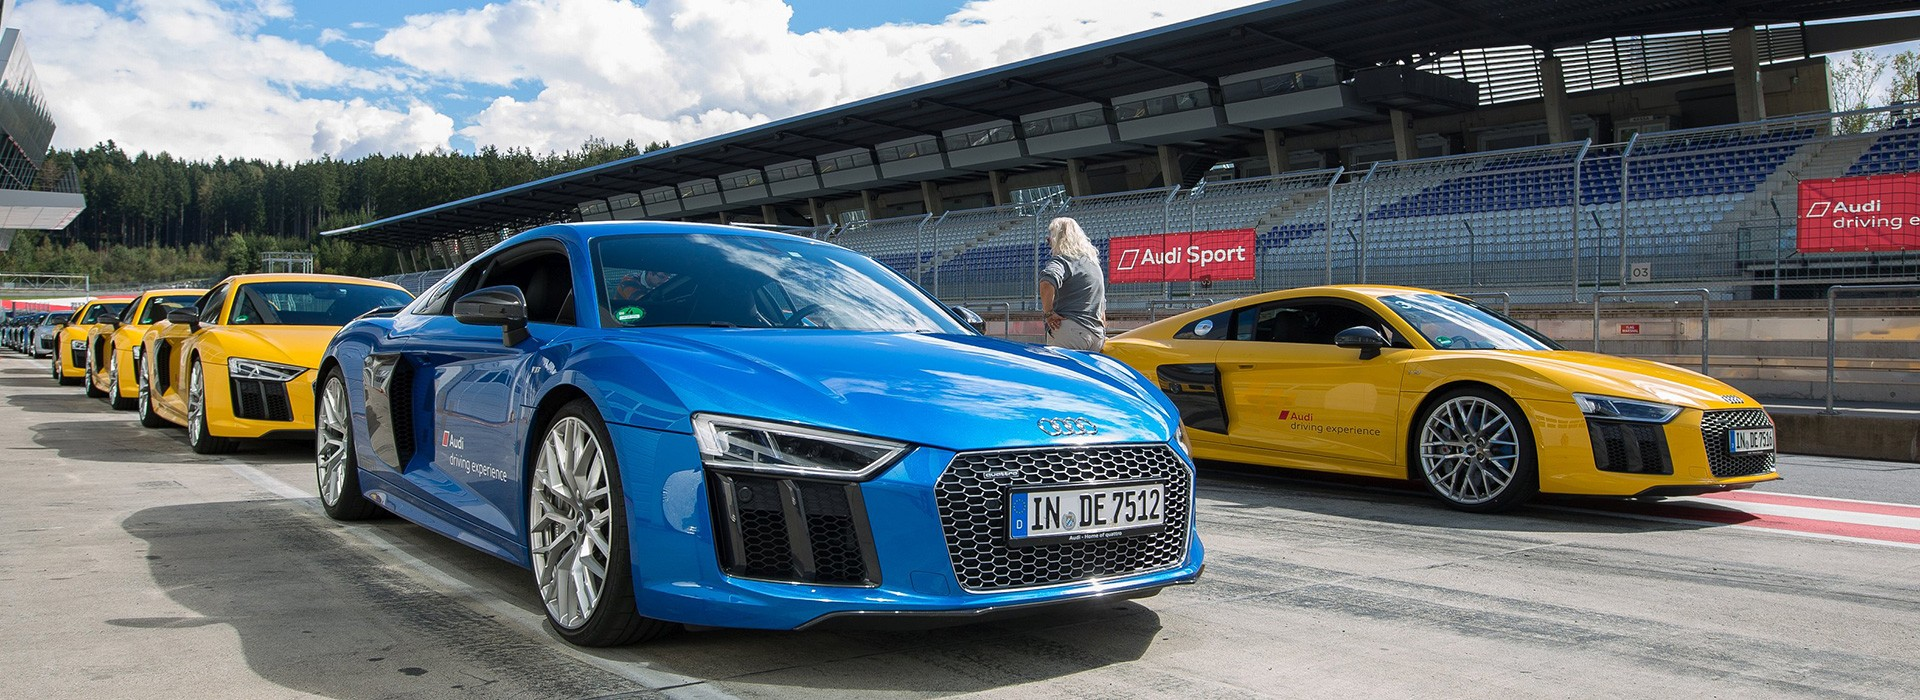 Audi Sportscar Experience - Red Bull Ring